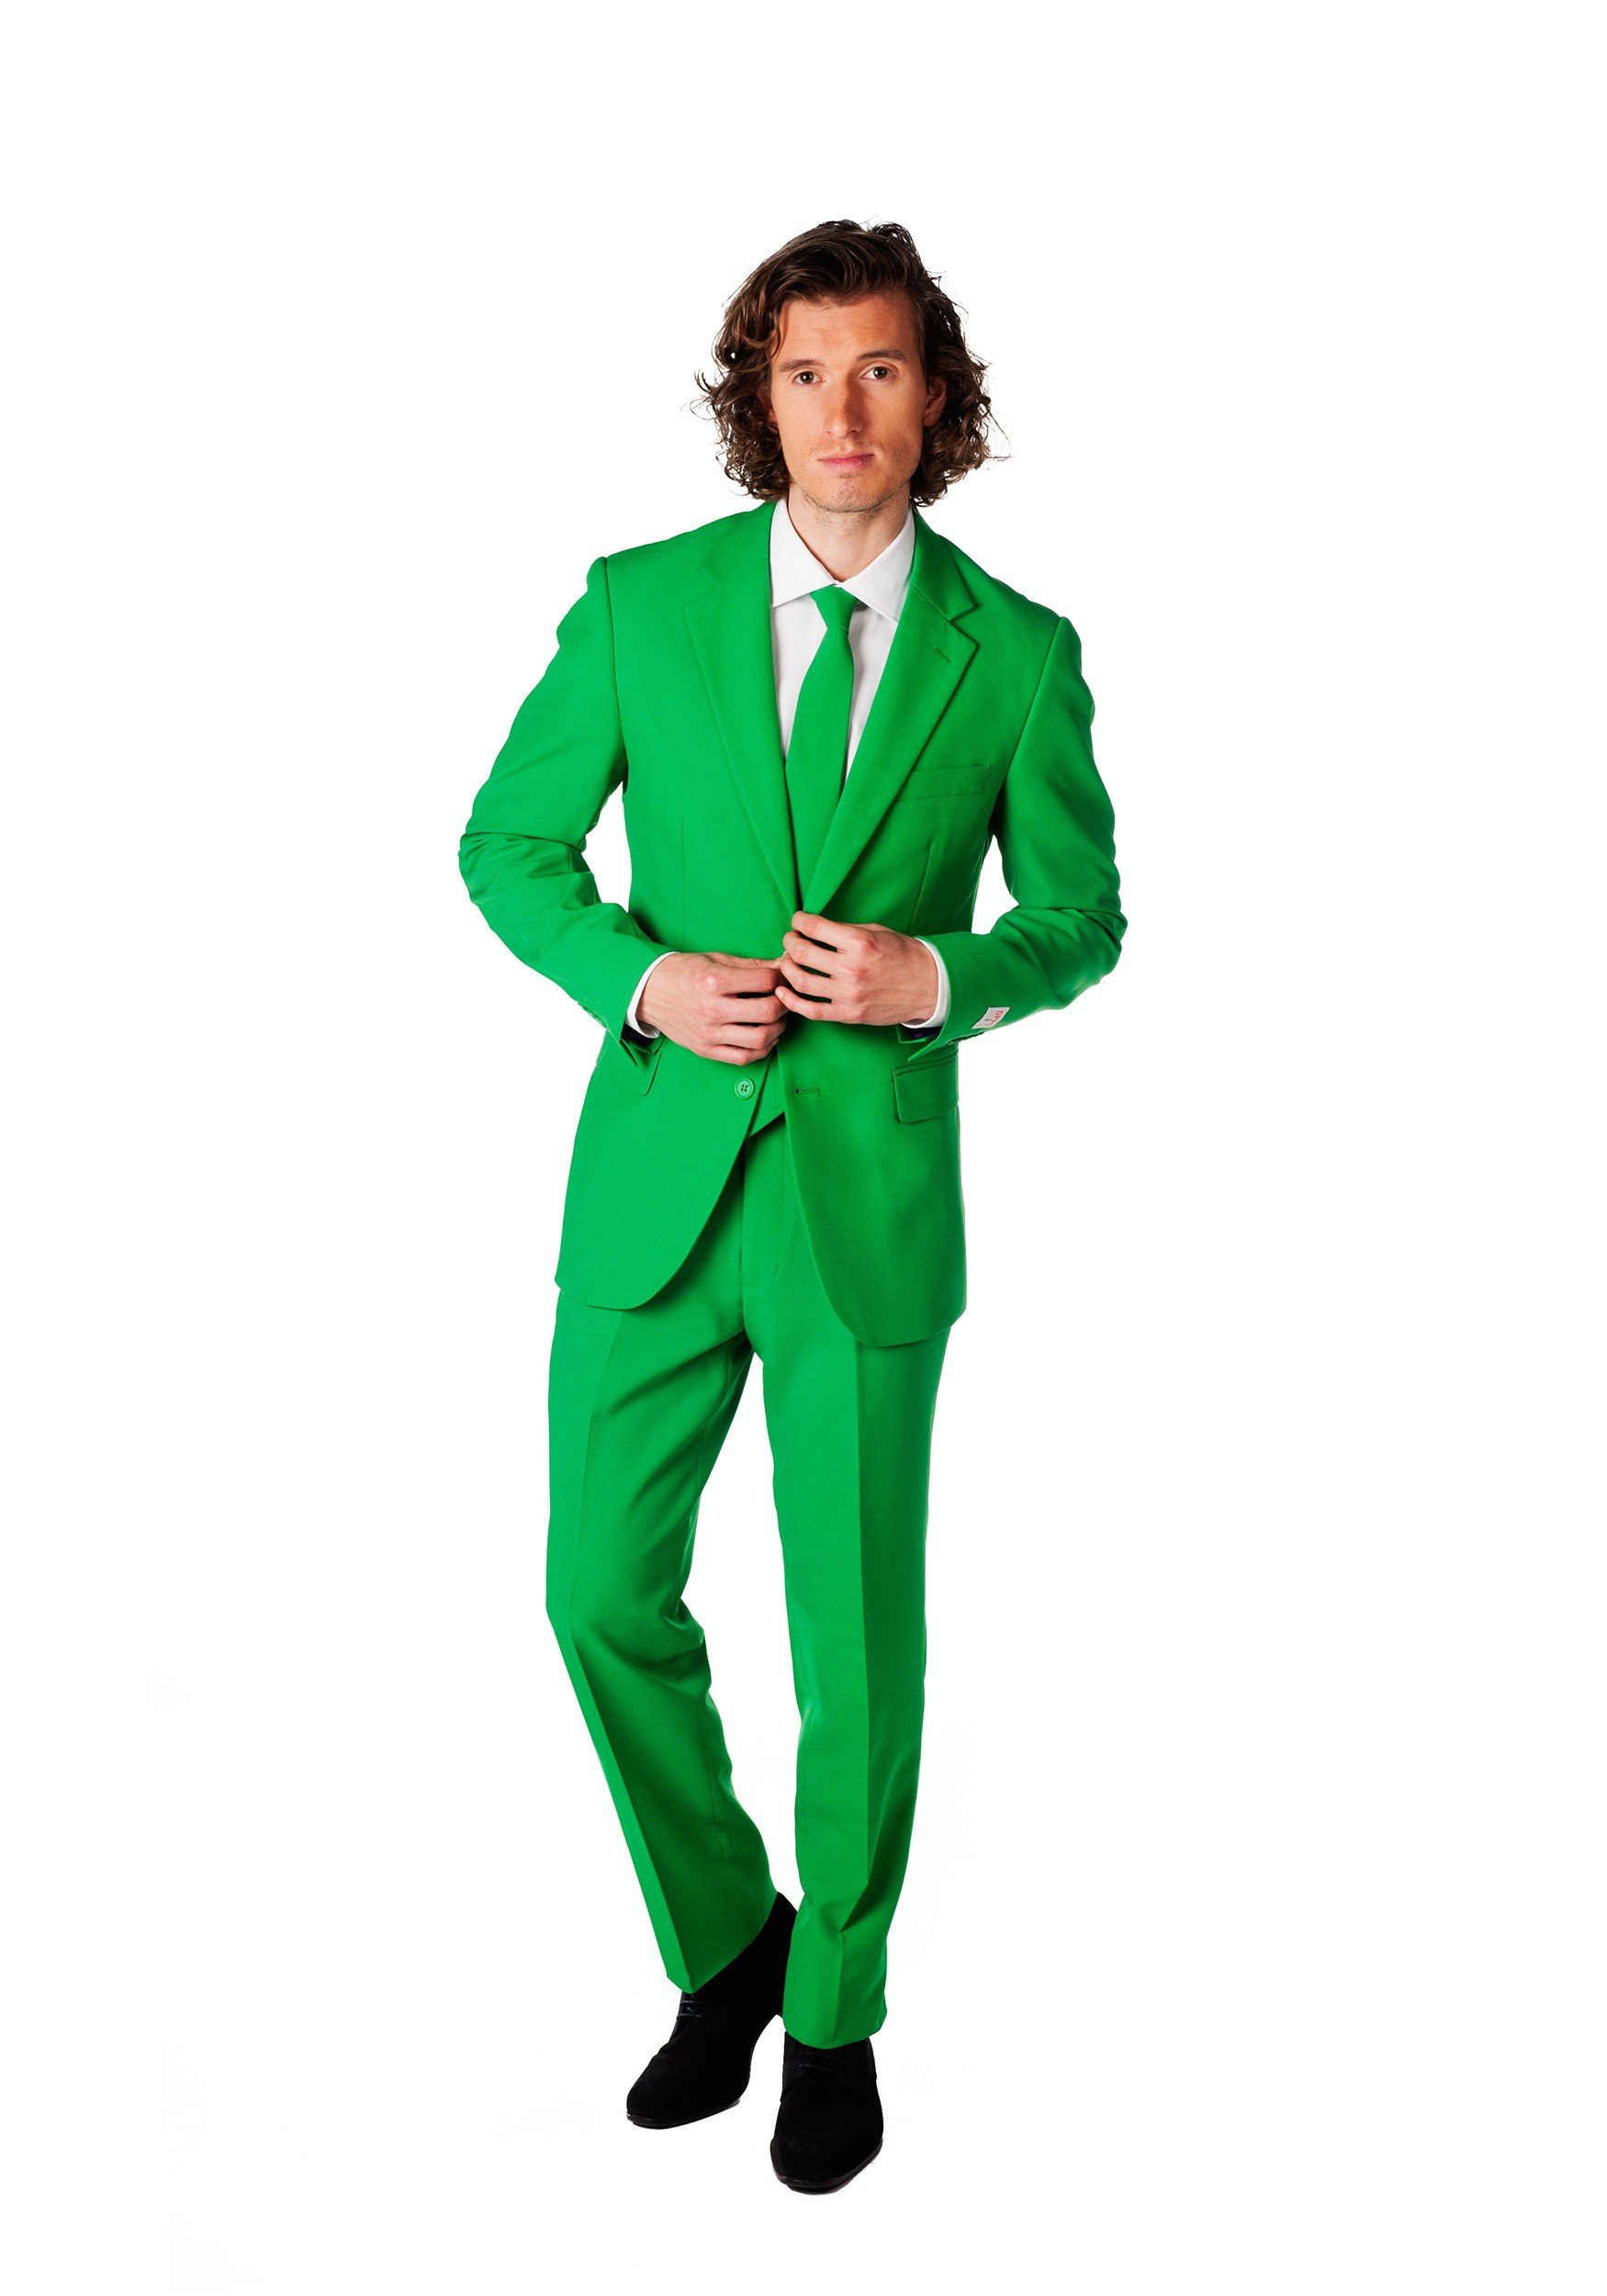 Opposuits Men's Evergreen Party Costume Suit, Green, 44 by Opposuits (Image #1)